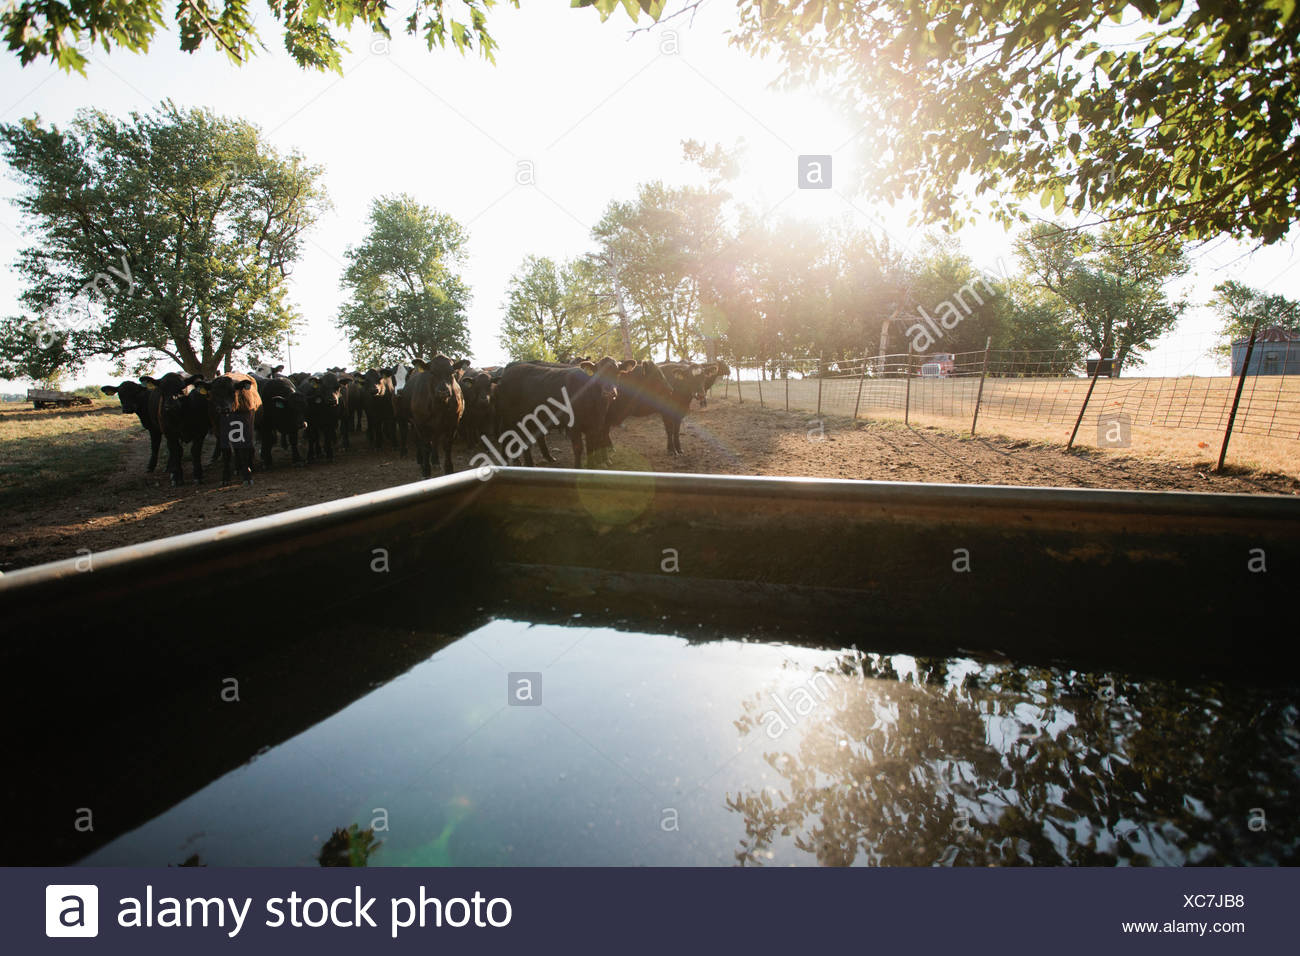 Cows in field by water tank - Stock Image